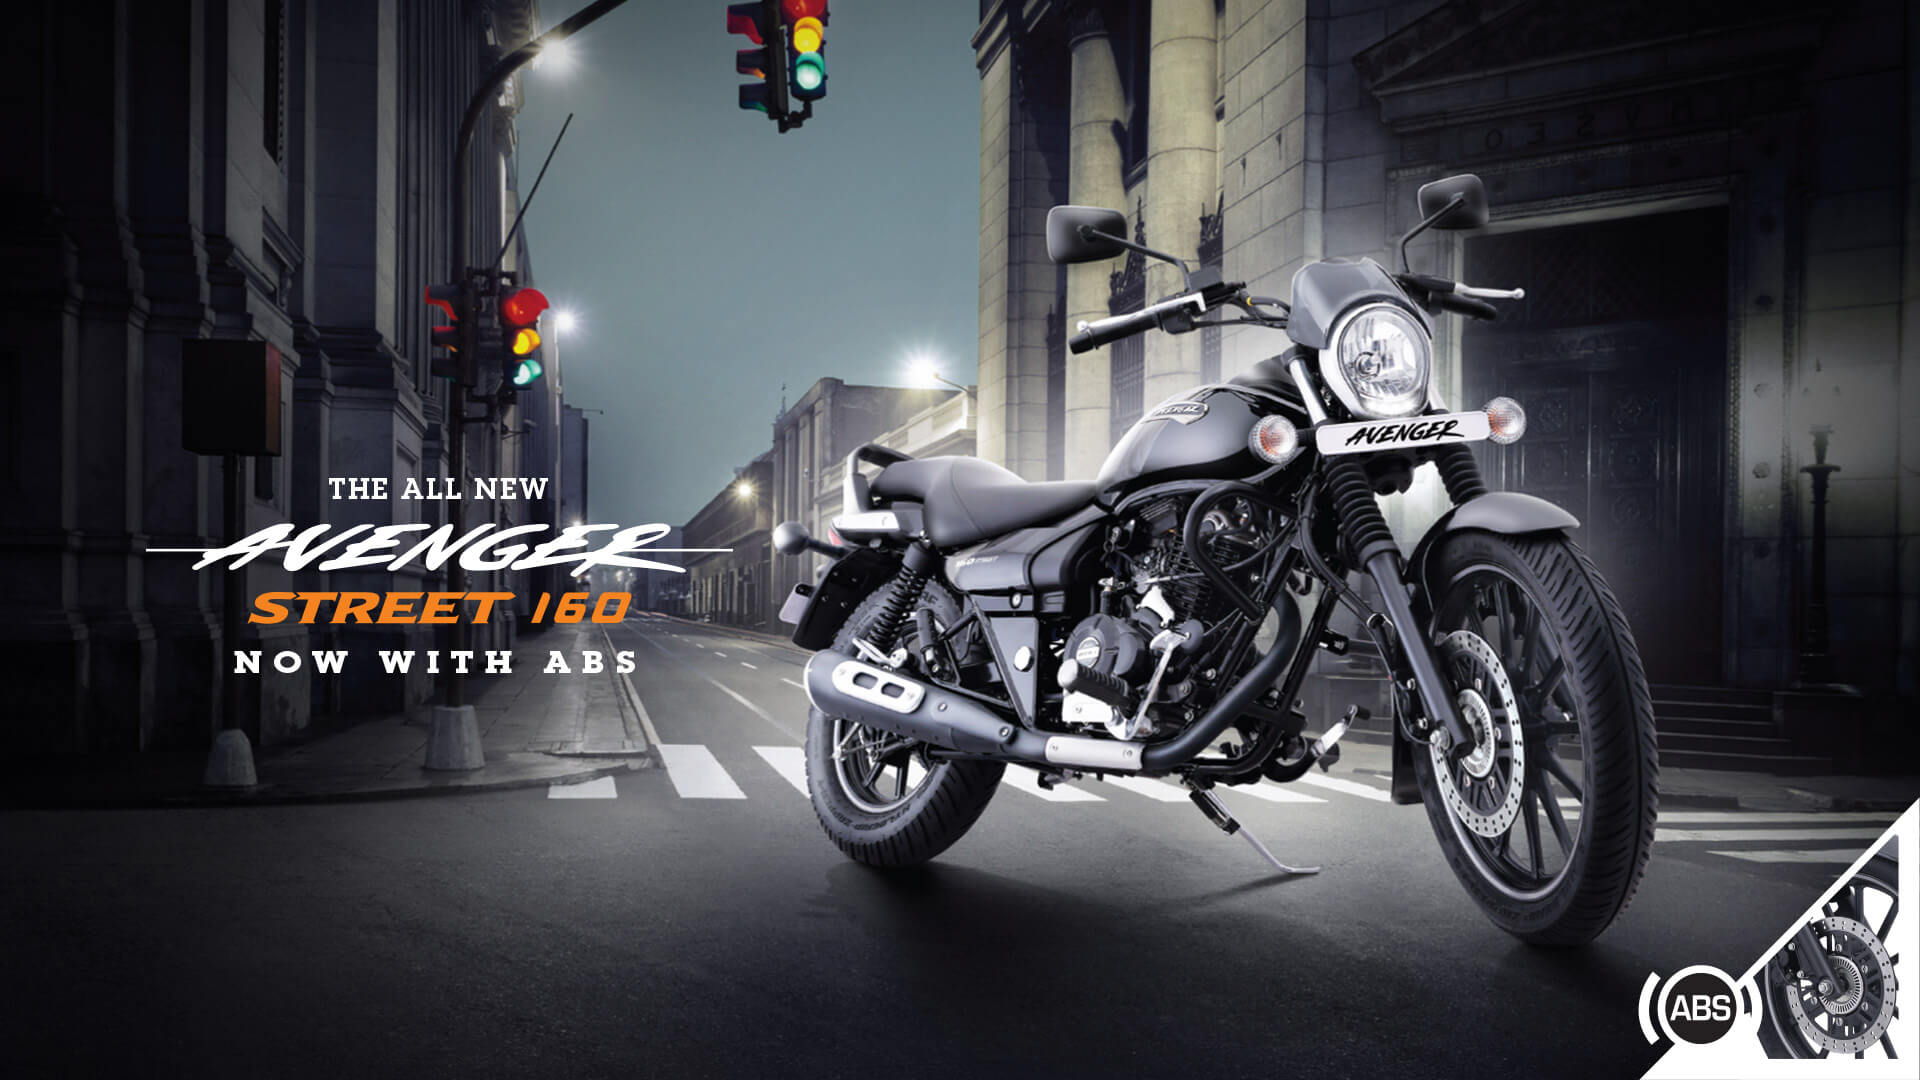 All New Black color bajaj avenger street 160cc with single channel abs